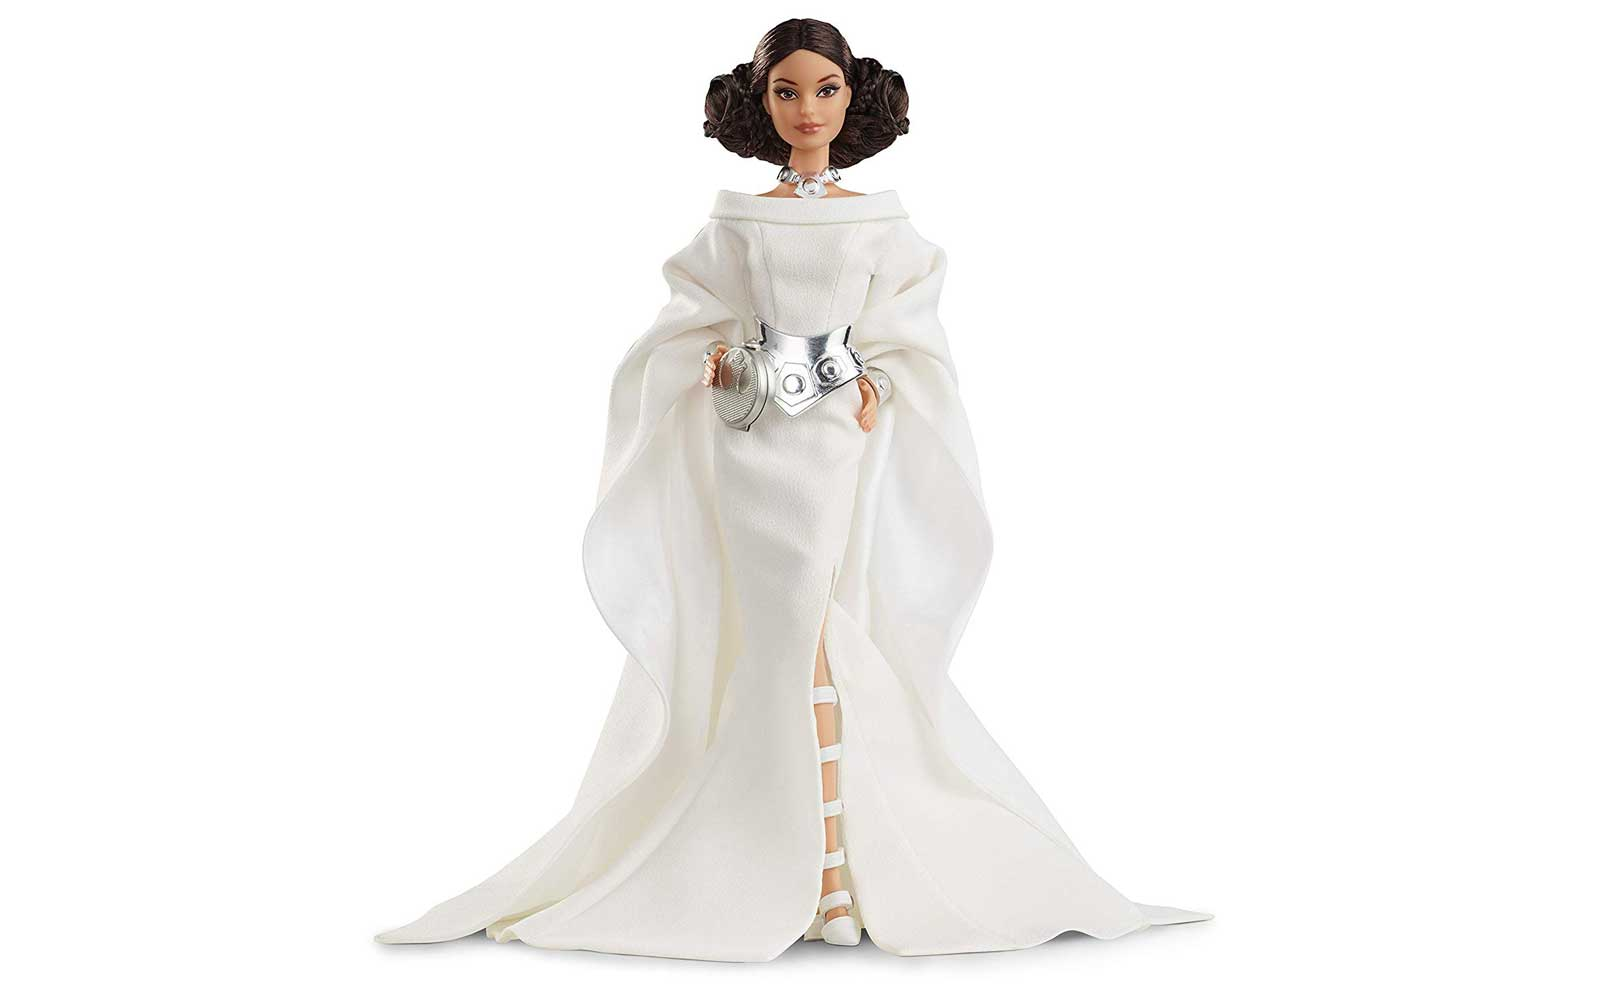 Princess Leia Star Wars Barbie Doll